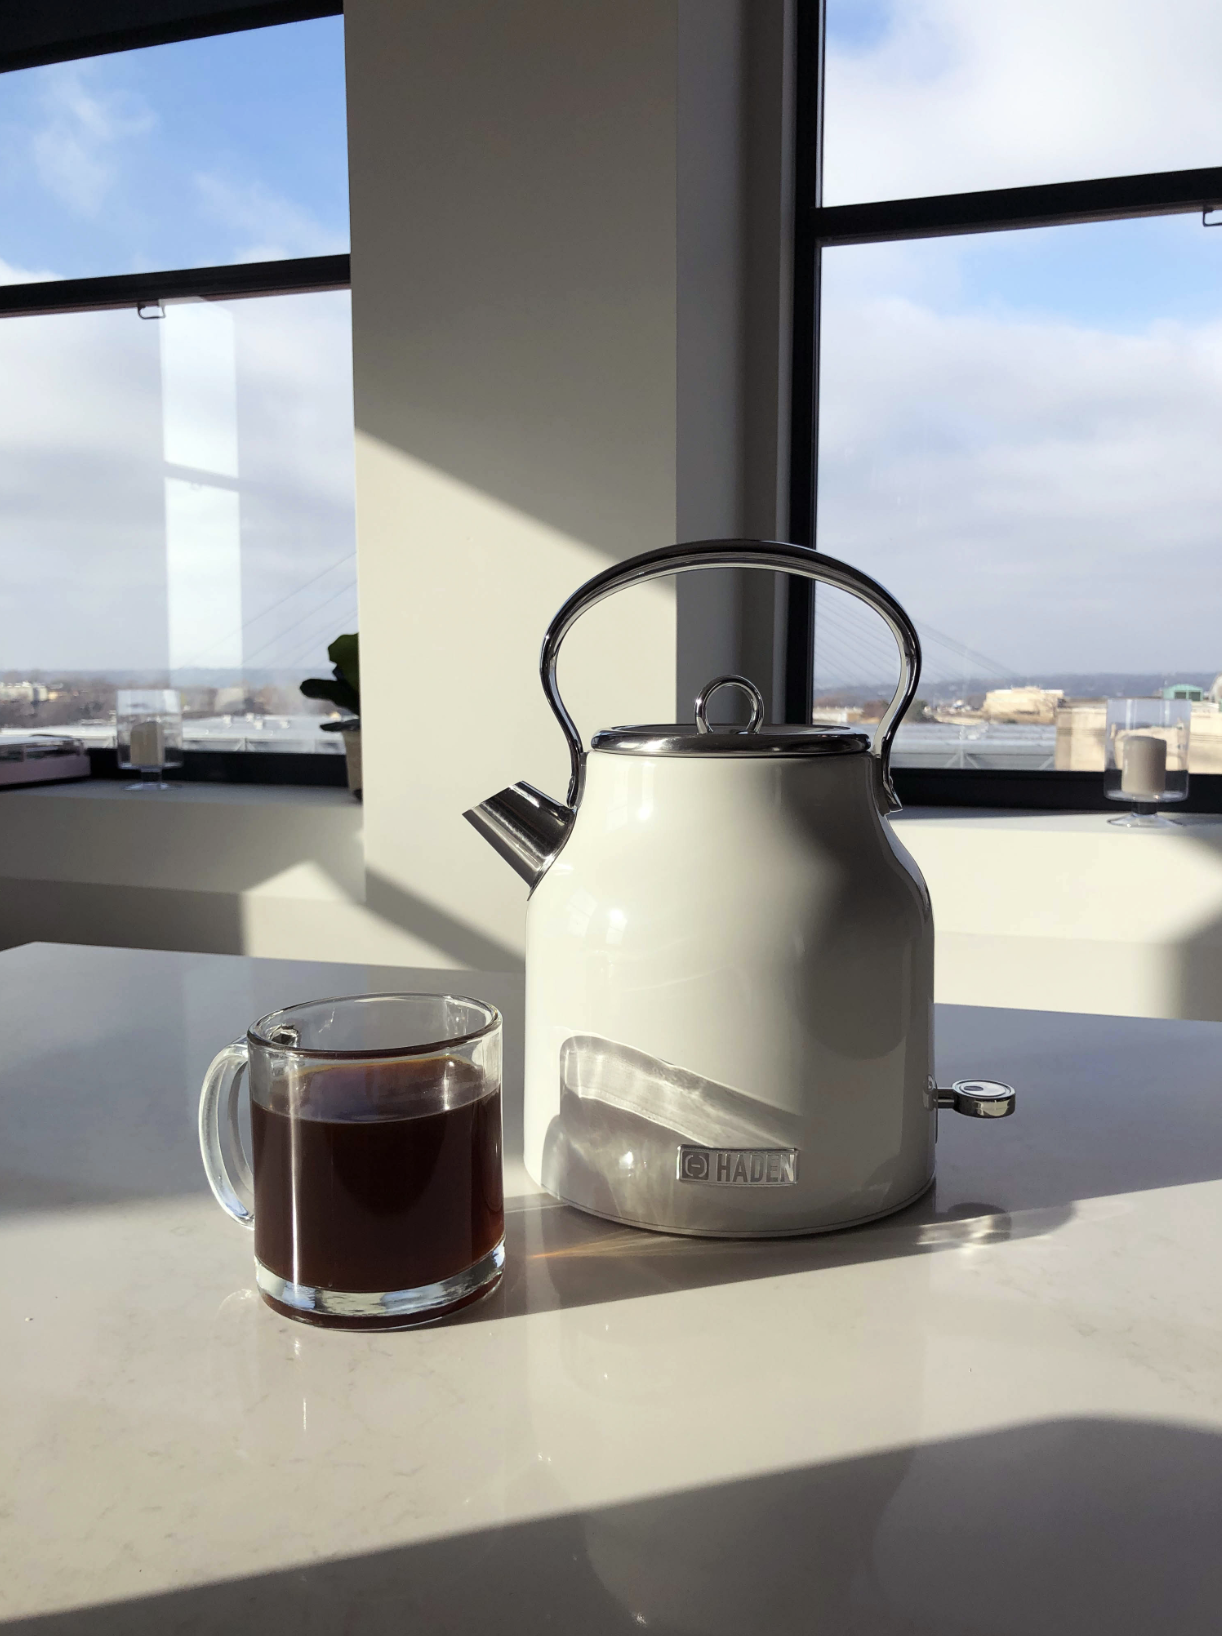 Haden Electric Kettle